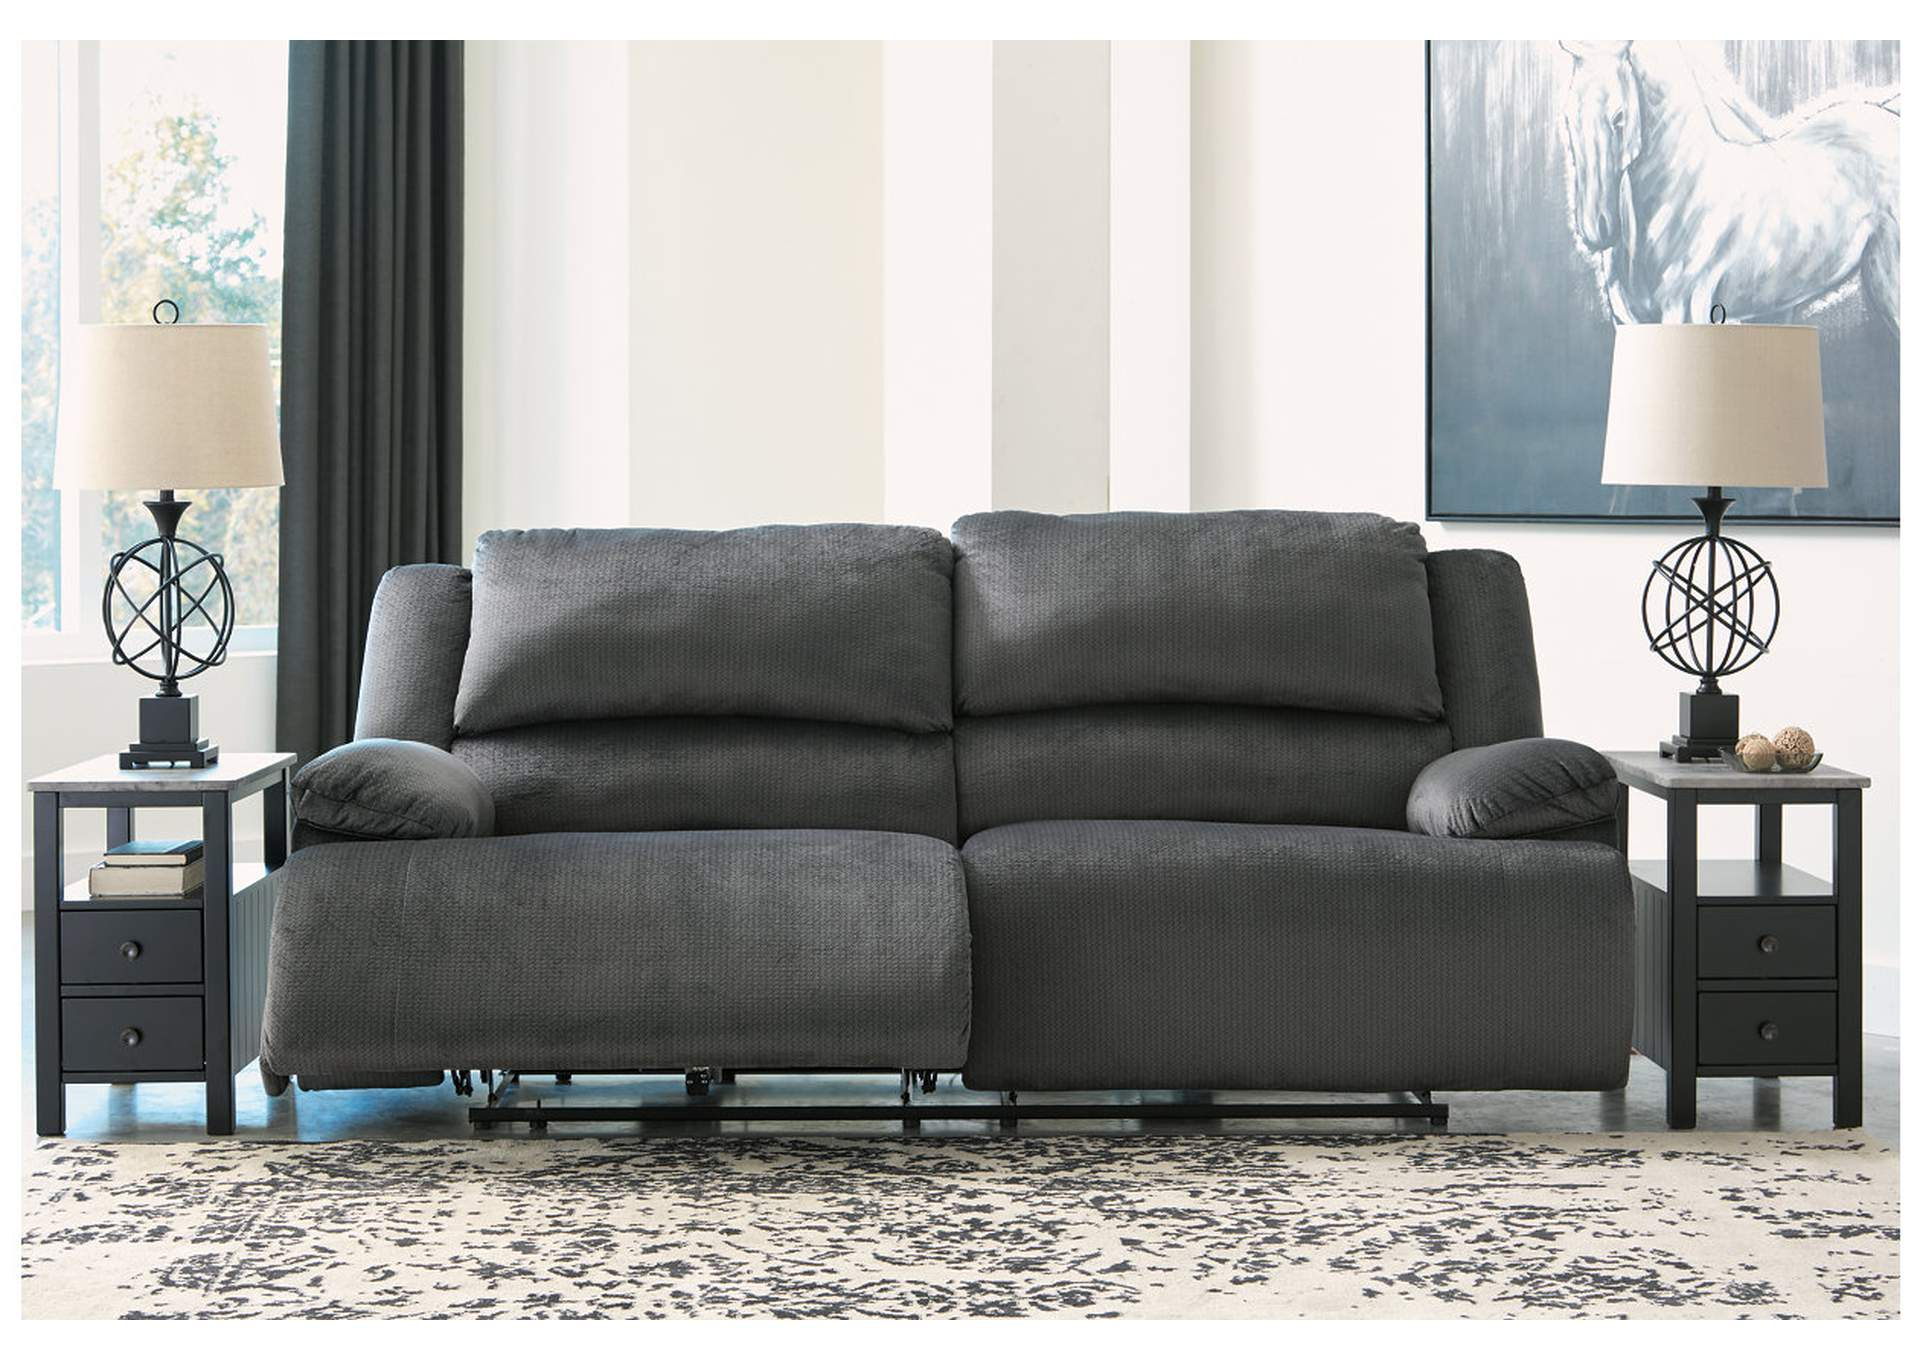 Clonmel Charcoal 2 Seat Reclining Sofa,Signature Design By Ashley